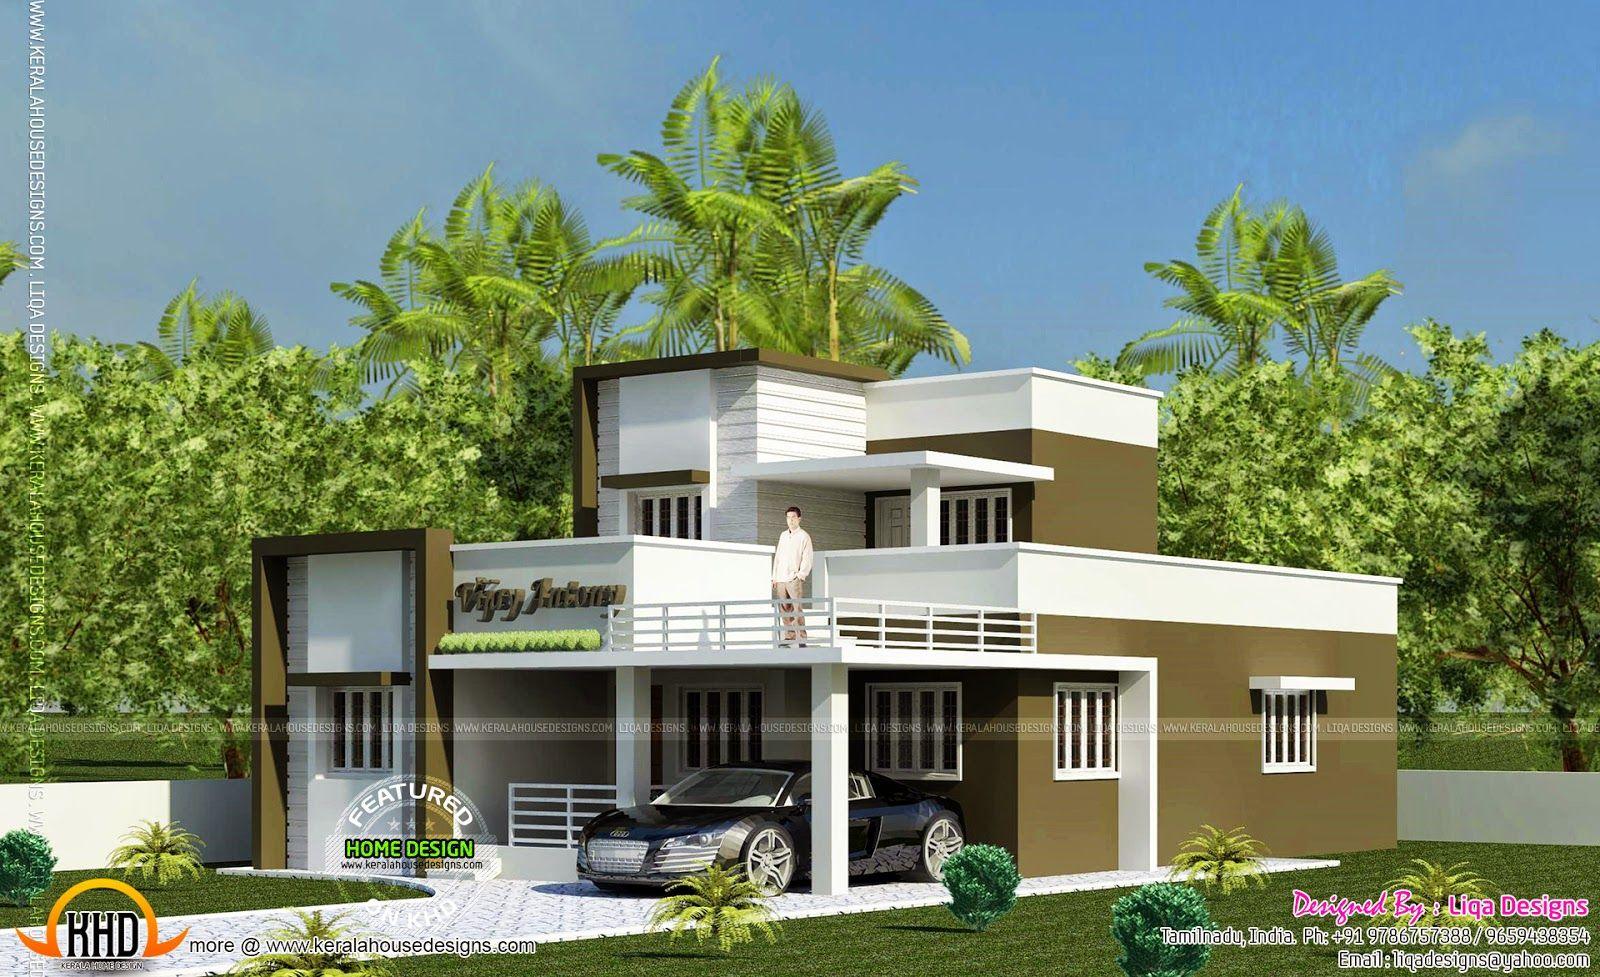 1365 sq-ft 2 bedroom small house design | Smallest house, Bedroom ...